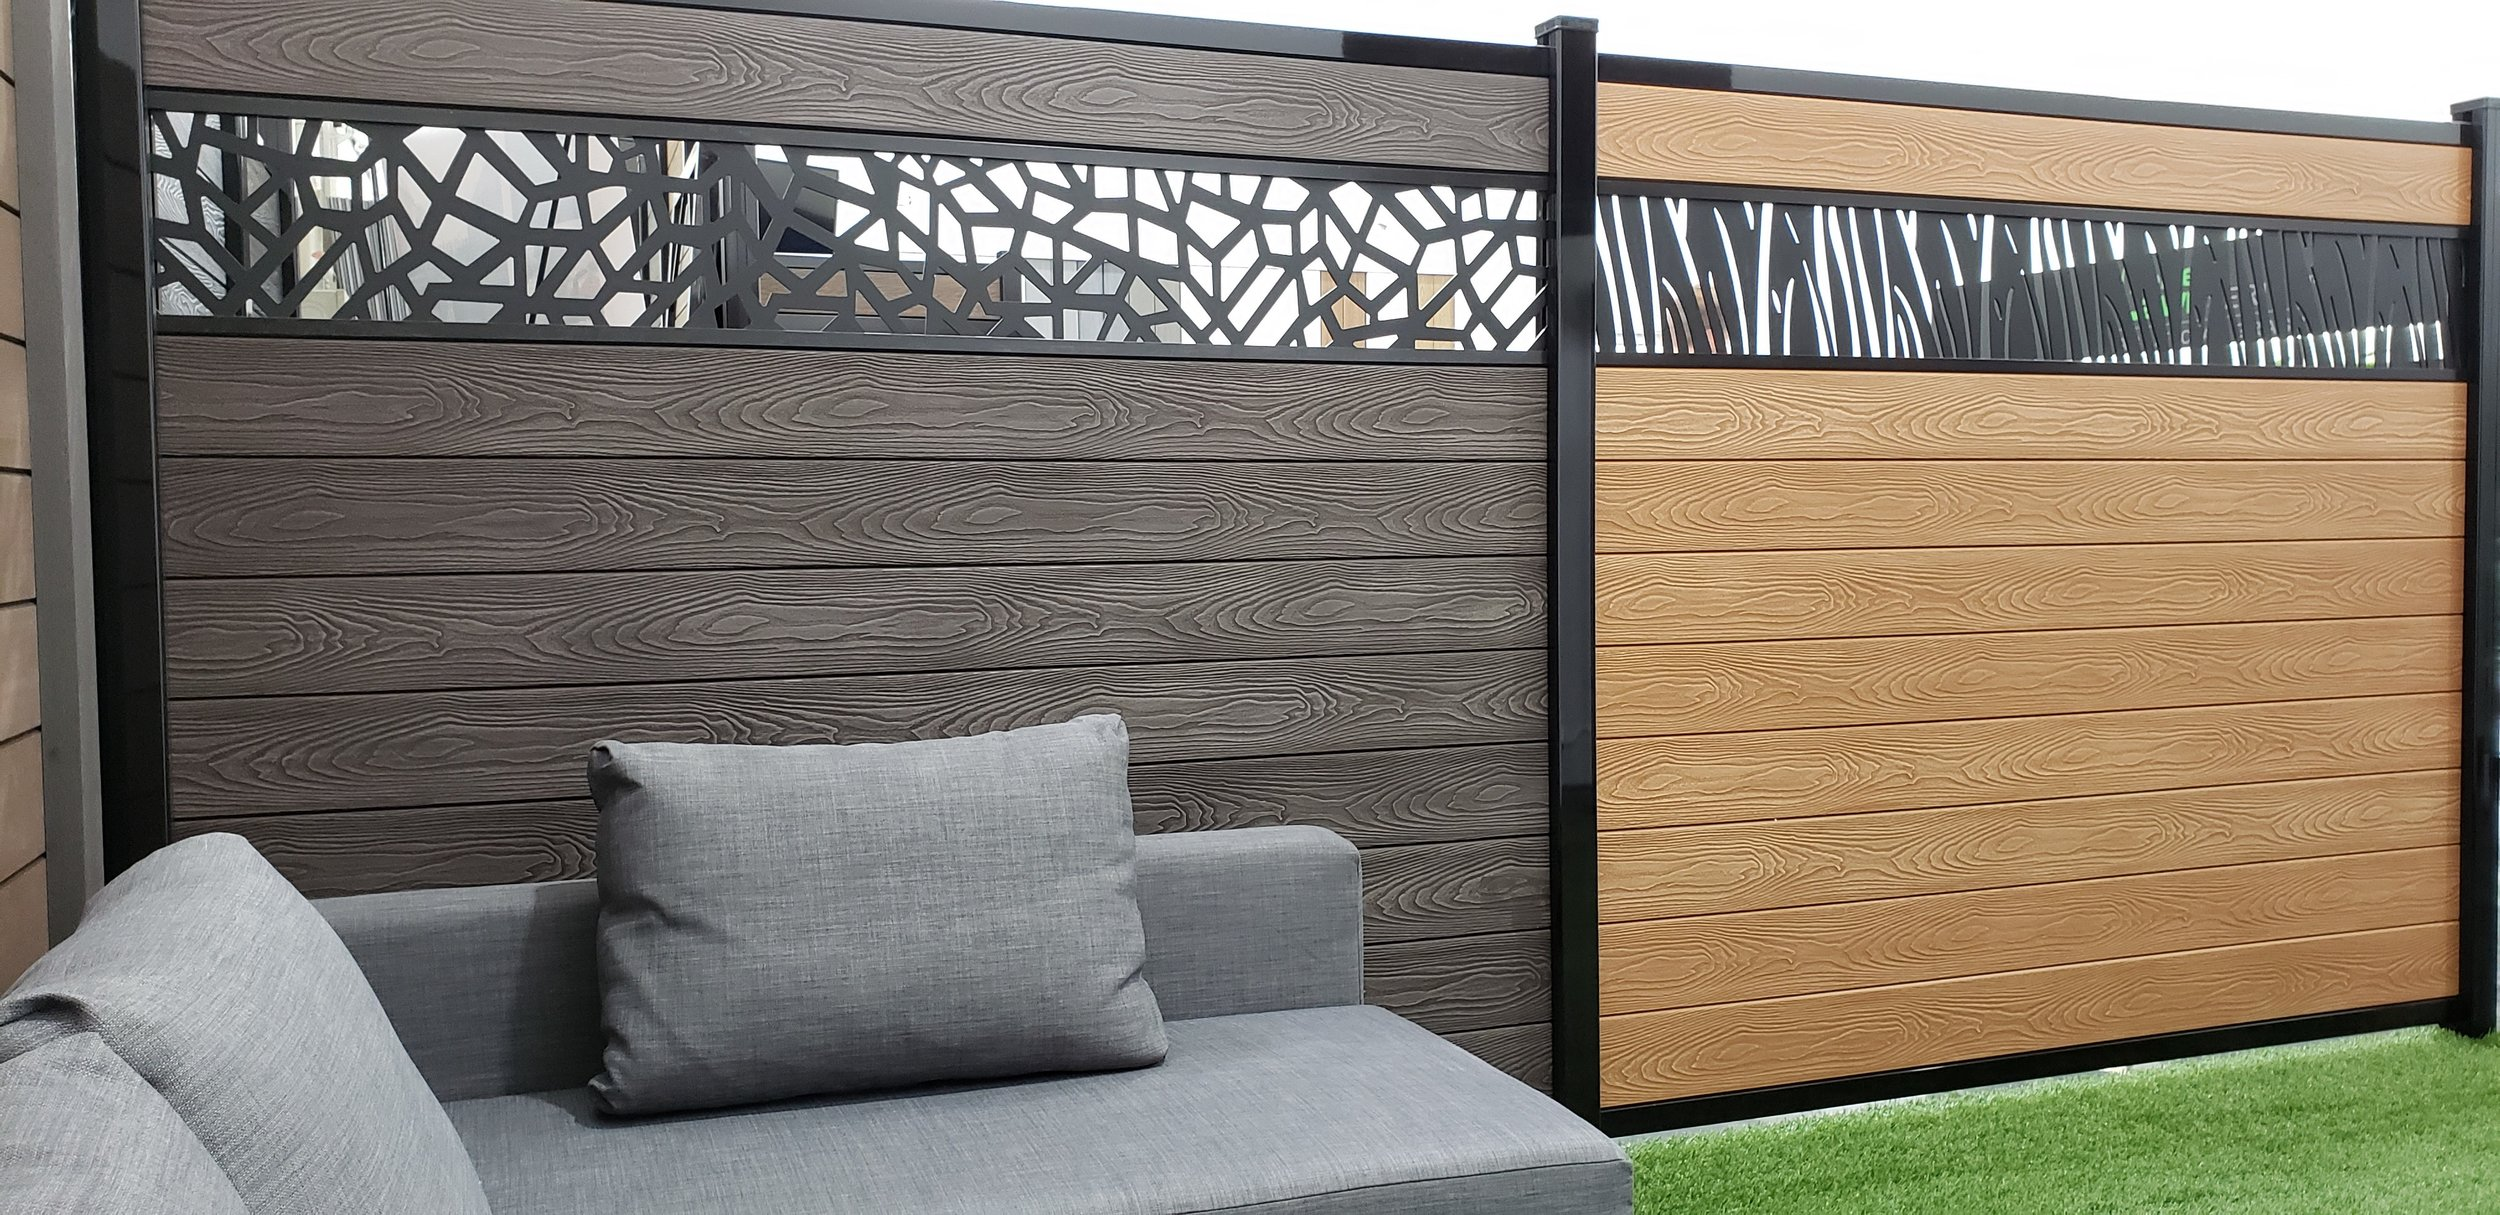 We Supply & Install Canadian Made Composite Decks & Fences, Don't Be Fooled By Cheap Imports From China! - We Are Proud And Confident In The Fact That We Offer The Highest Quality Composite Decks & Fences In Ontario, Guaranteed! Before You Purchase Your Next Composite Fence, You Are Obligated To Compare.